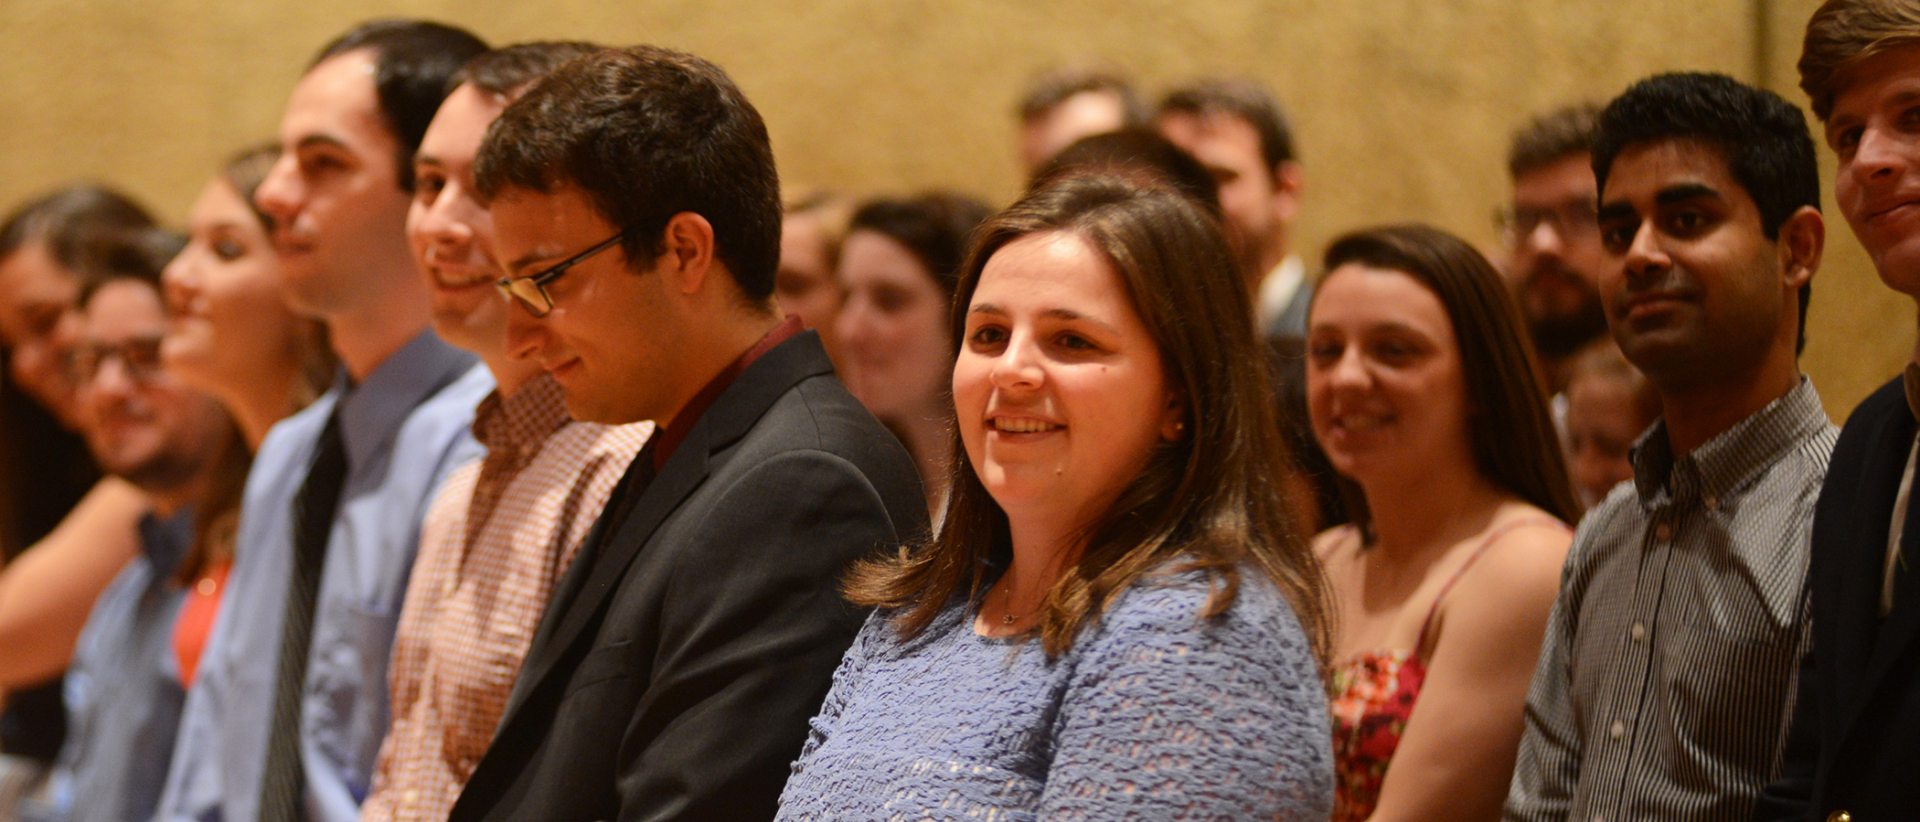 Academic Honor Societies at UMass Amherst Commonwealth Honors College